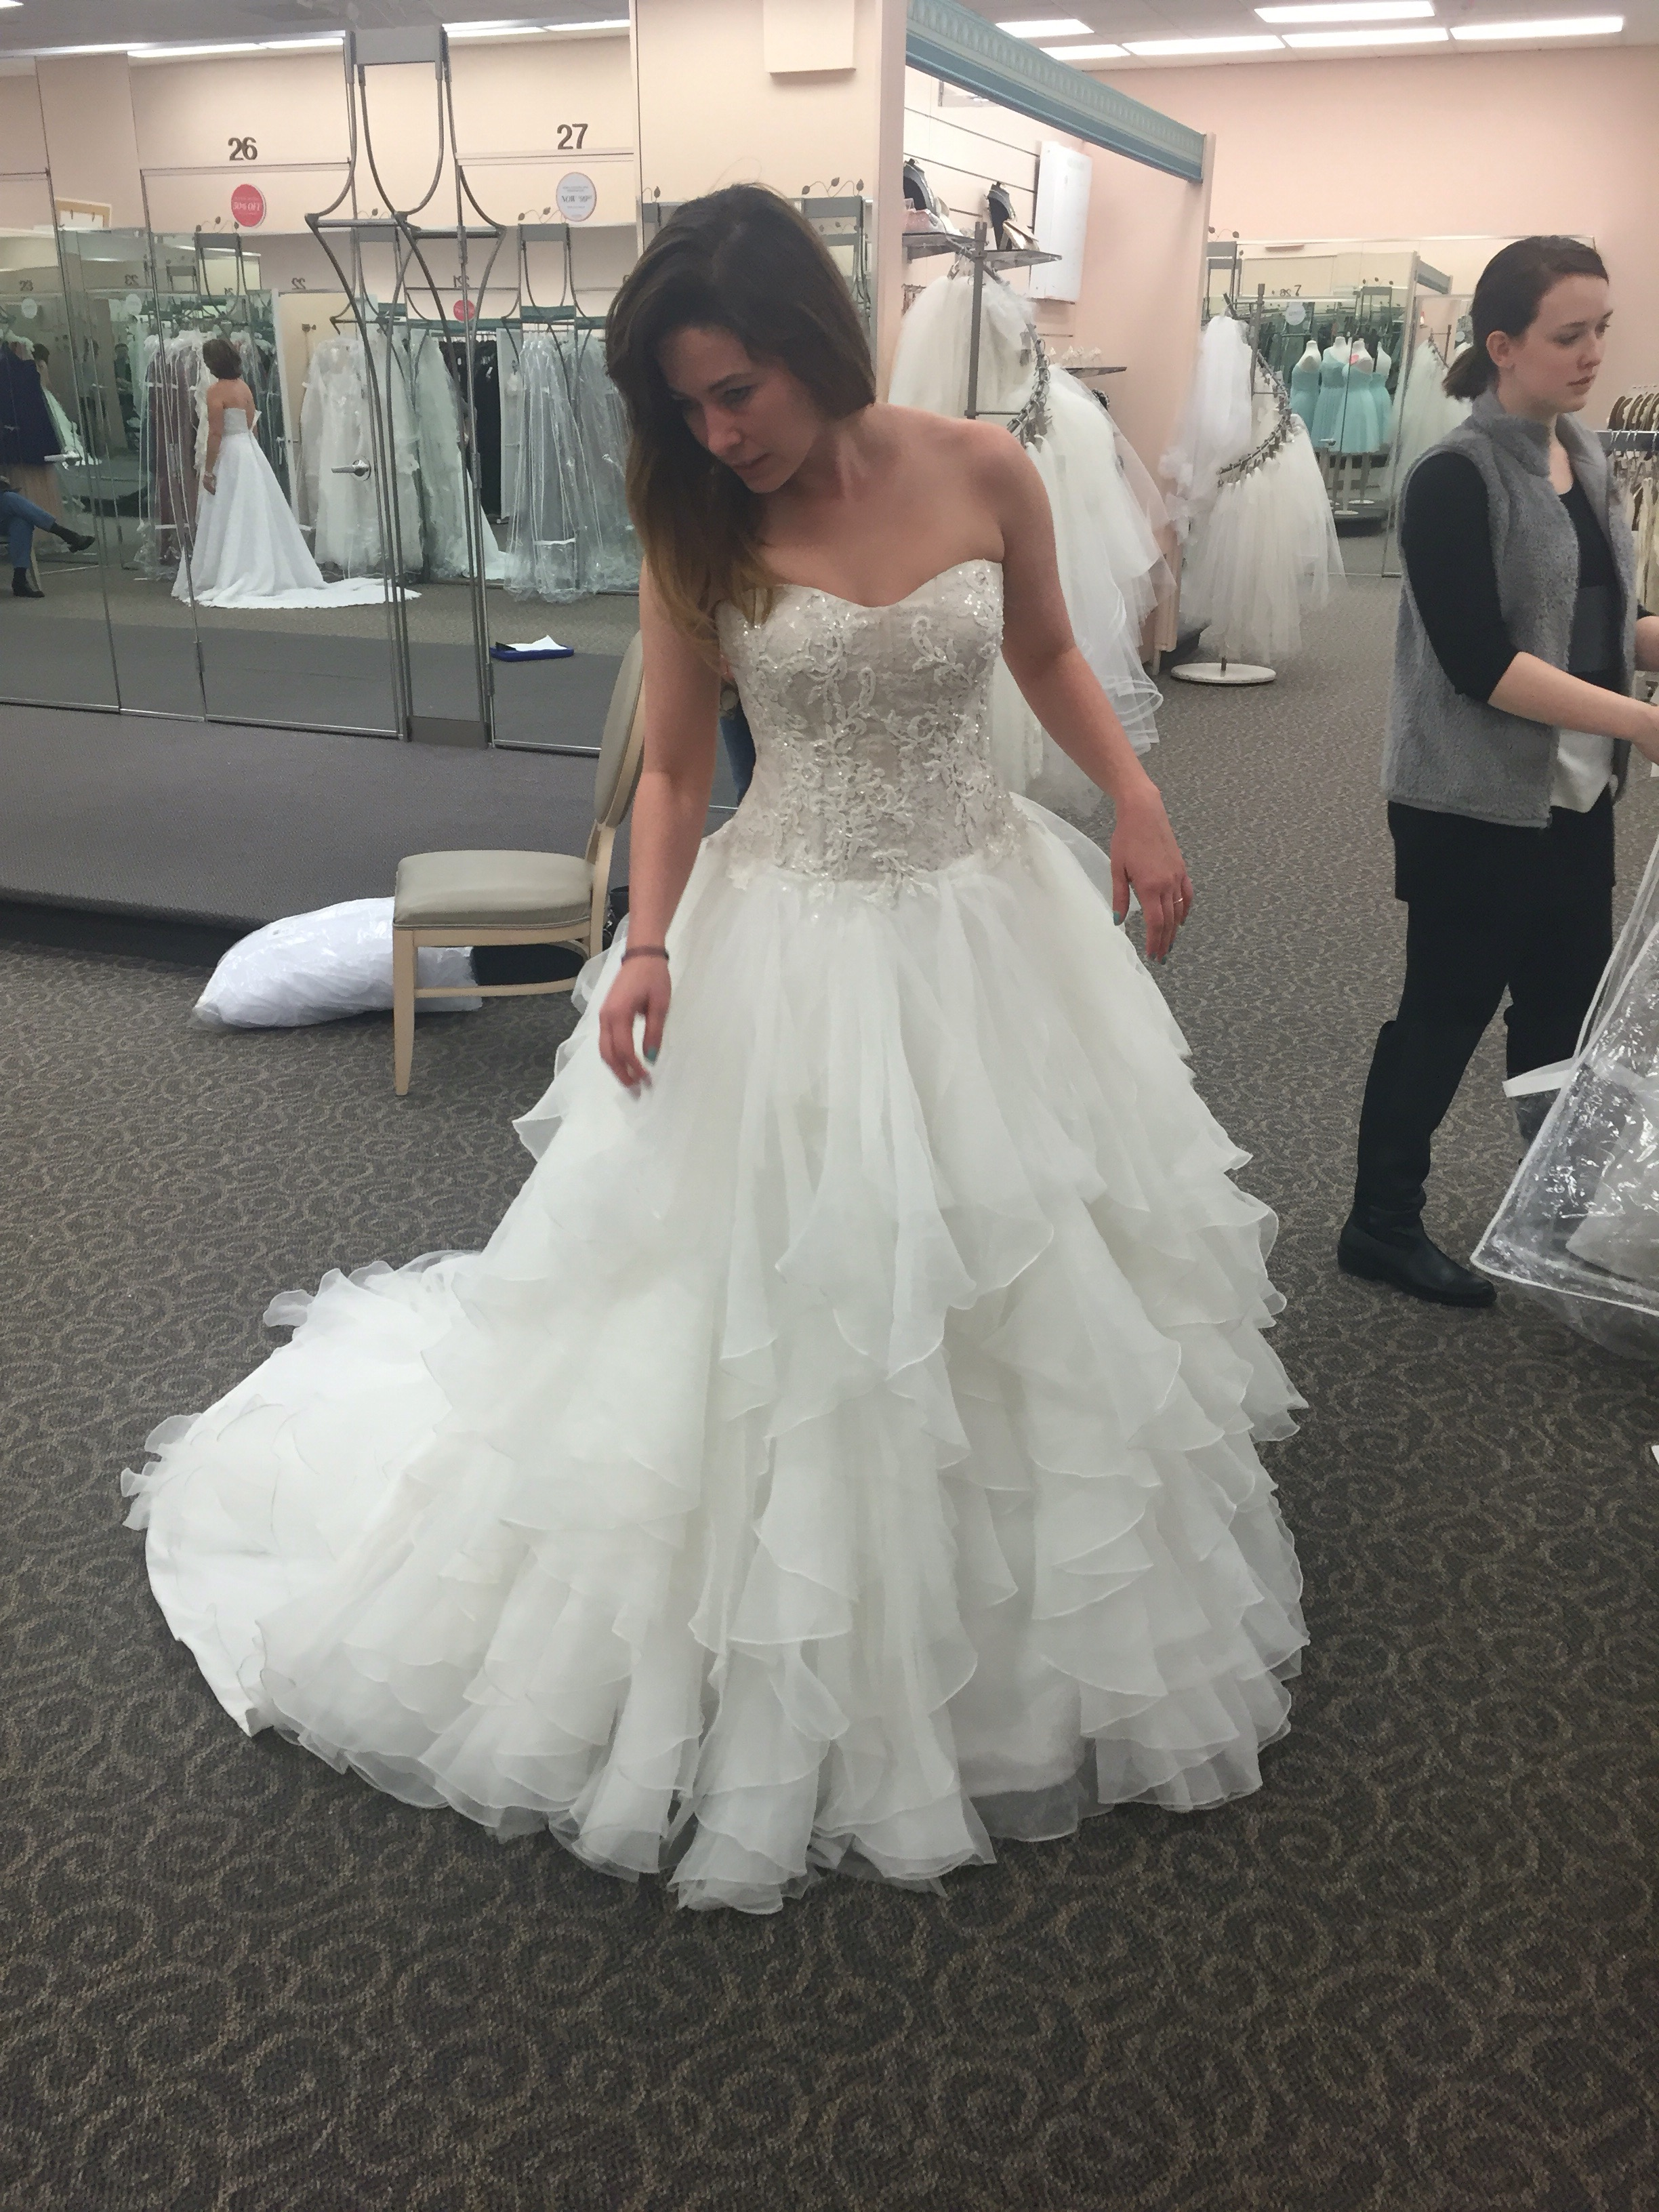 Try on Wedding Dresses  The Great Goal Rush